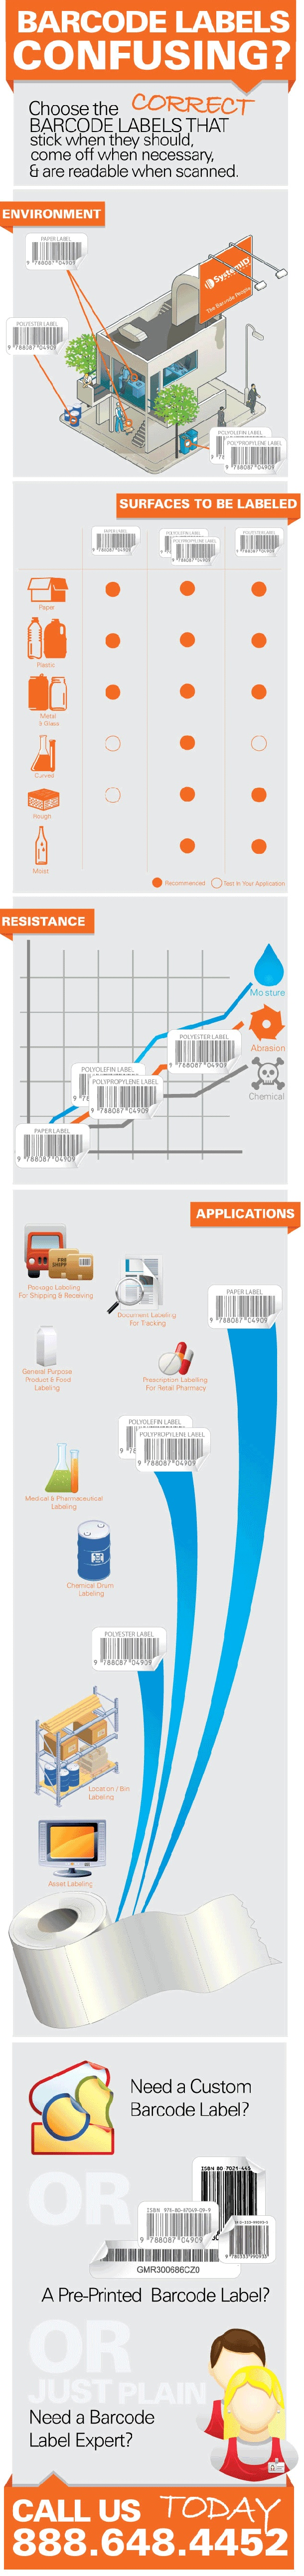 Barcode Labels Confusing? [INFOGRAPHIC]